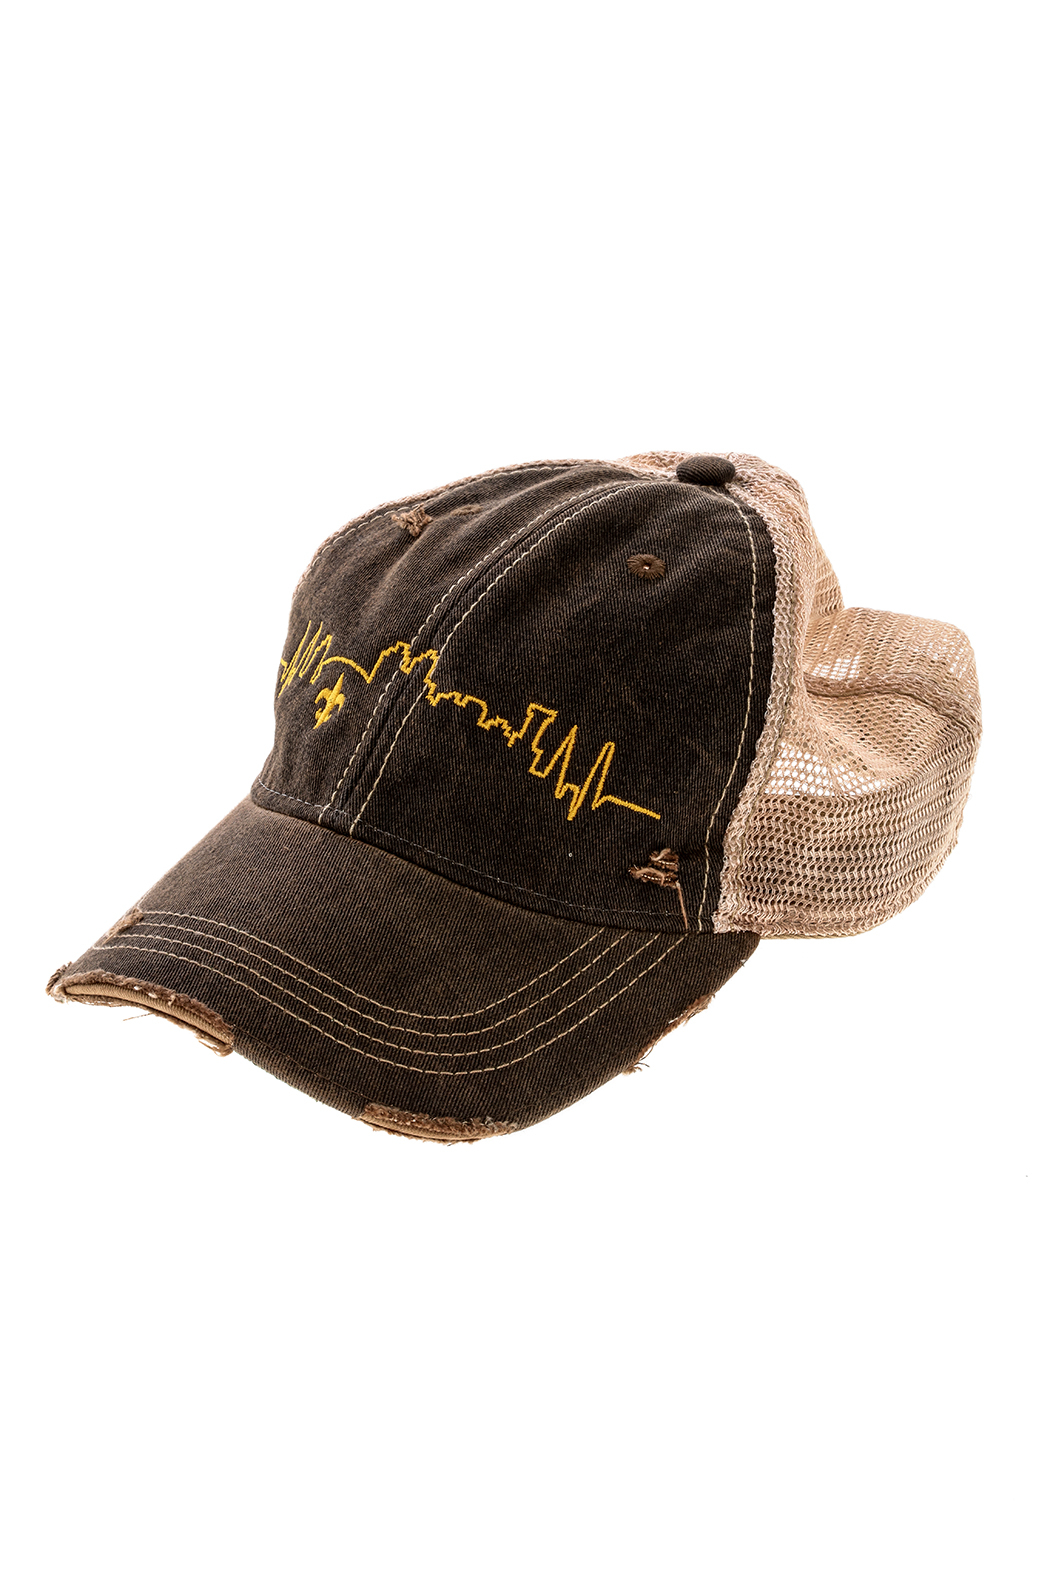 Sarah Ott Nola Skyline Truckers Hat - Front Cropped Image